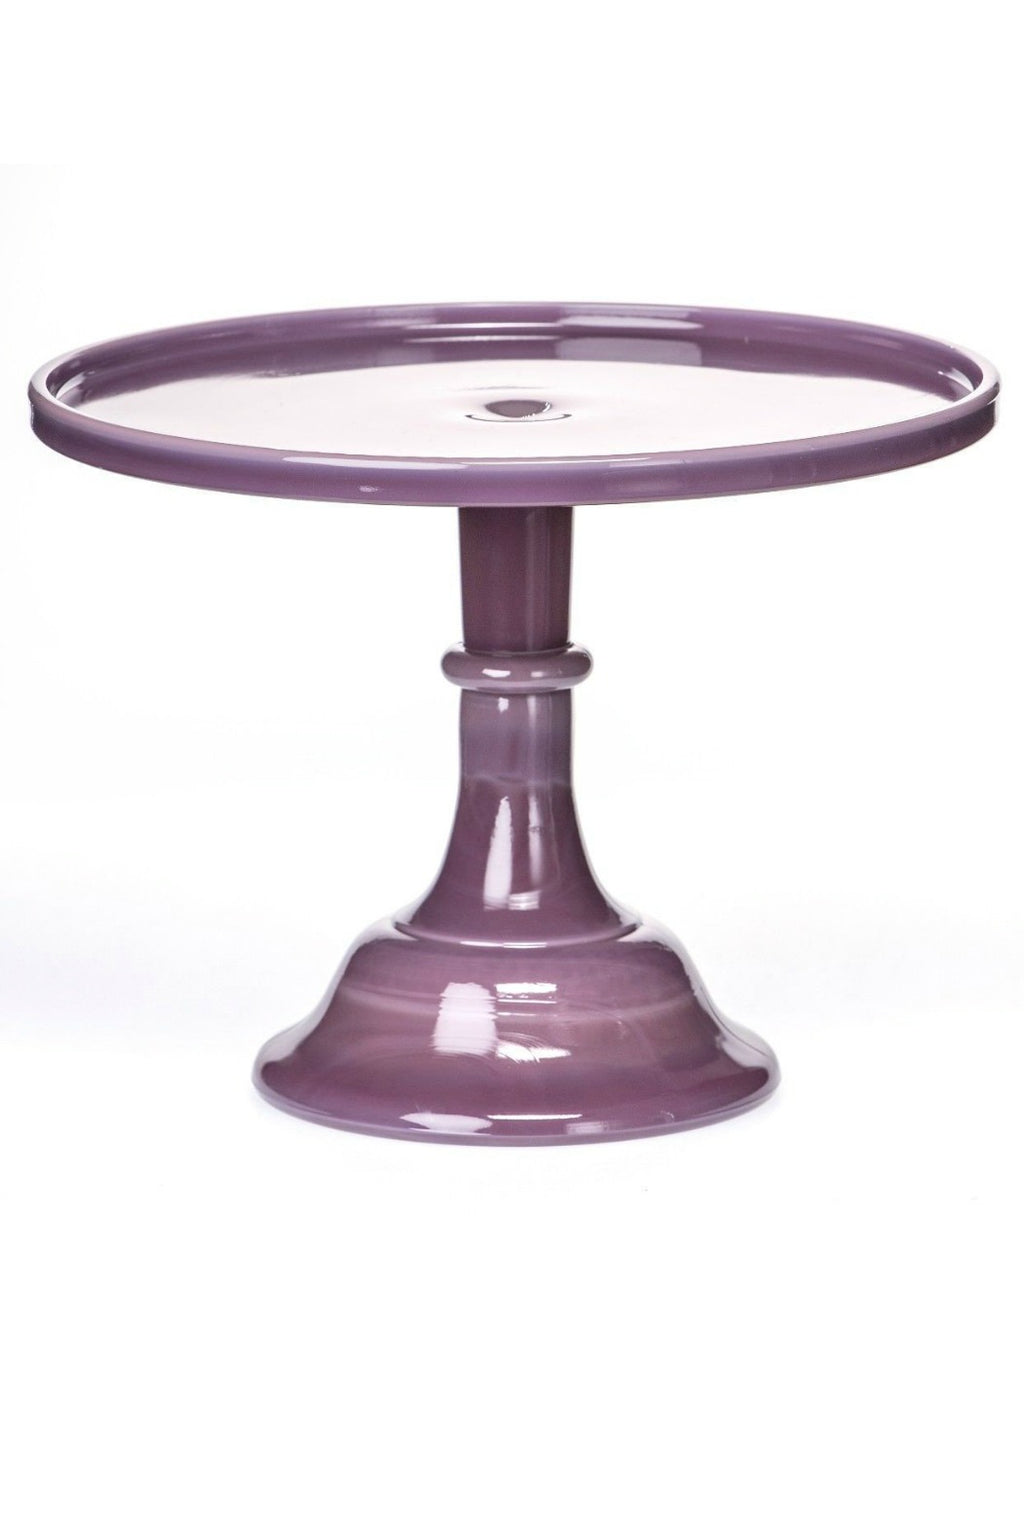 "Mosser Glass Cake 10"" Pedestal in Eggplant"